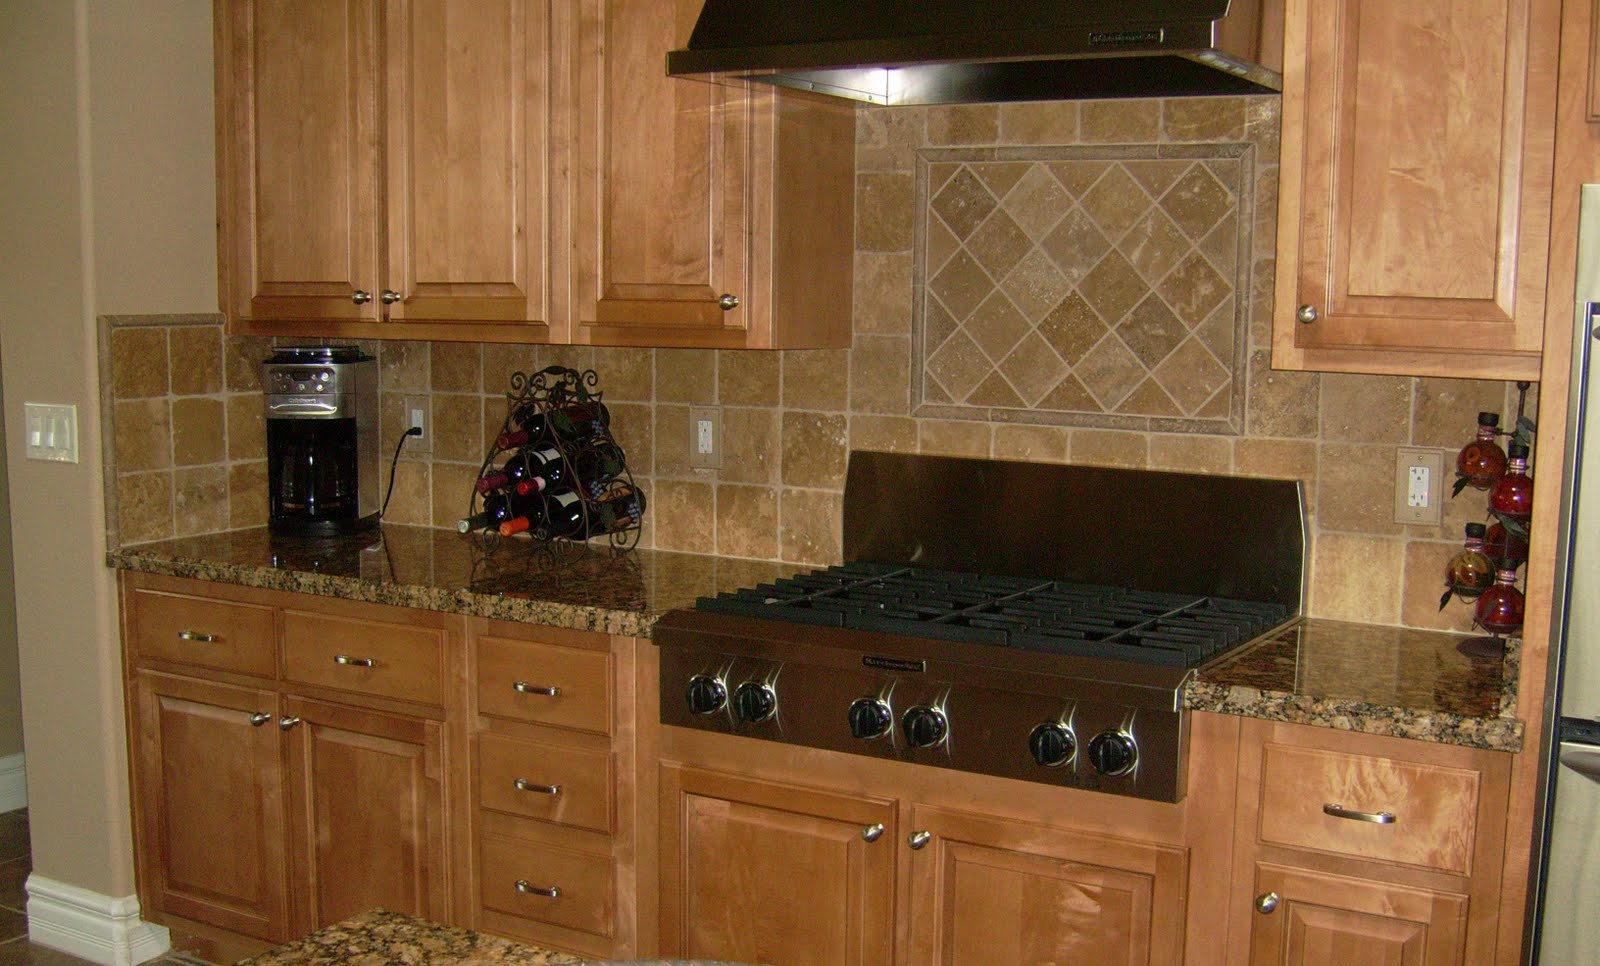 French Country Backsplash